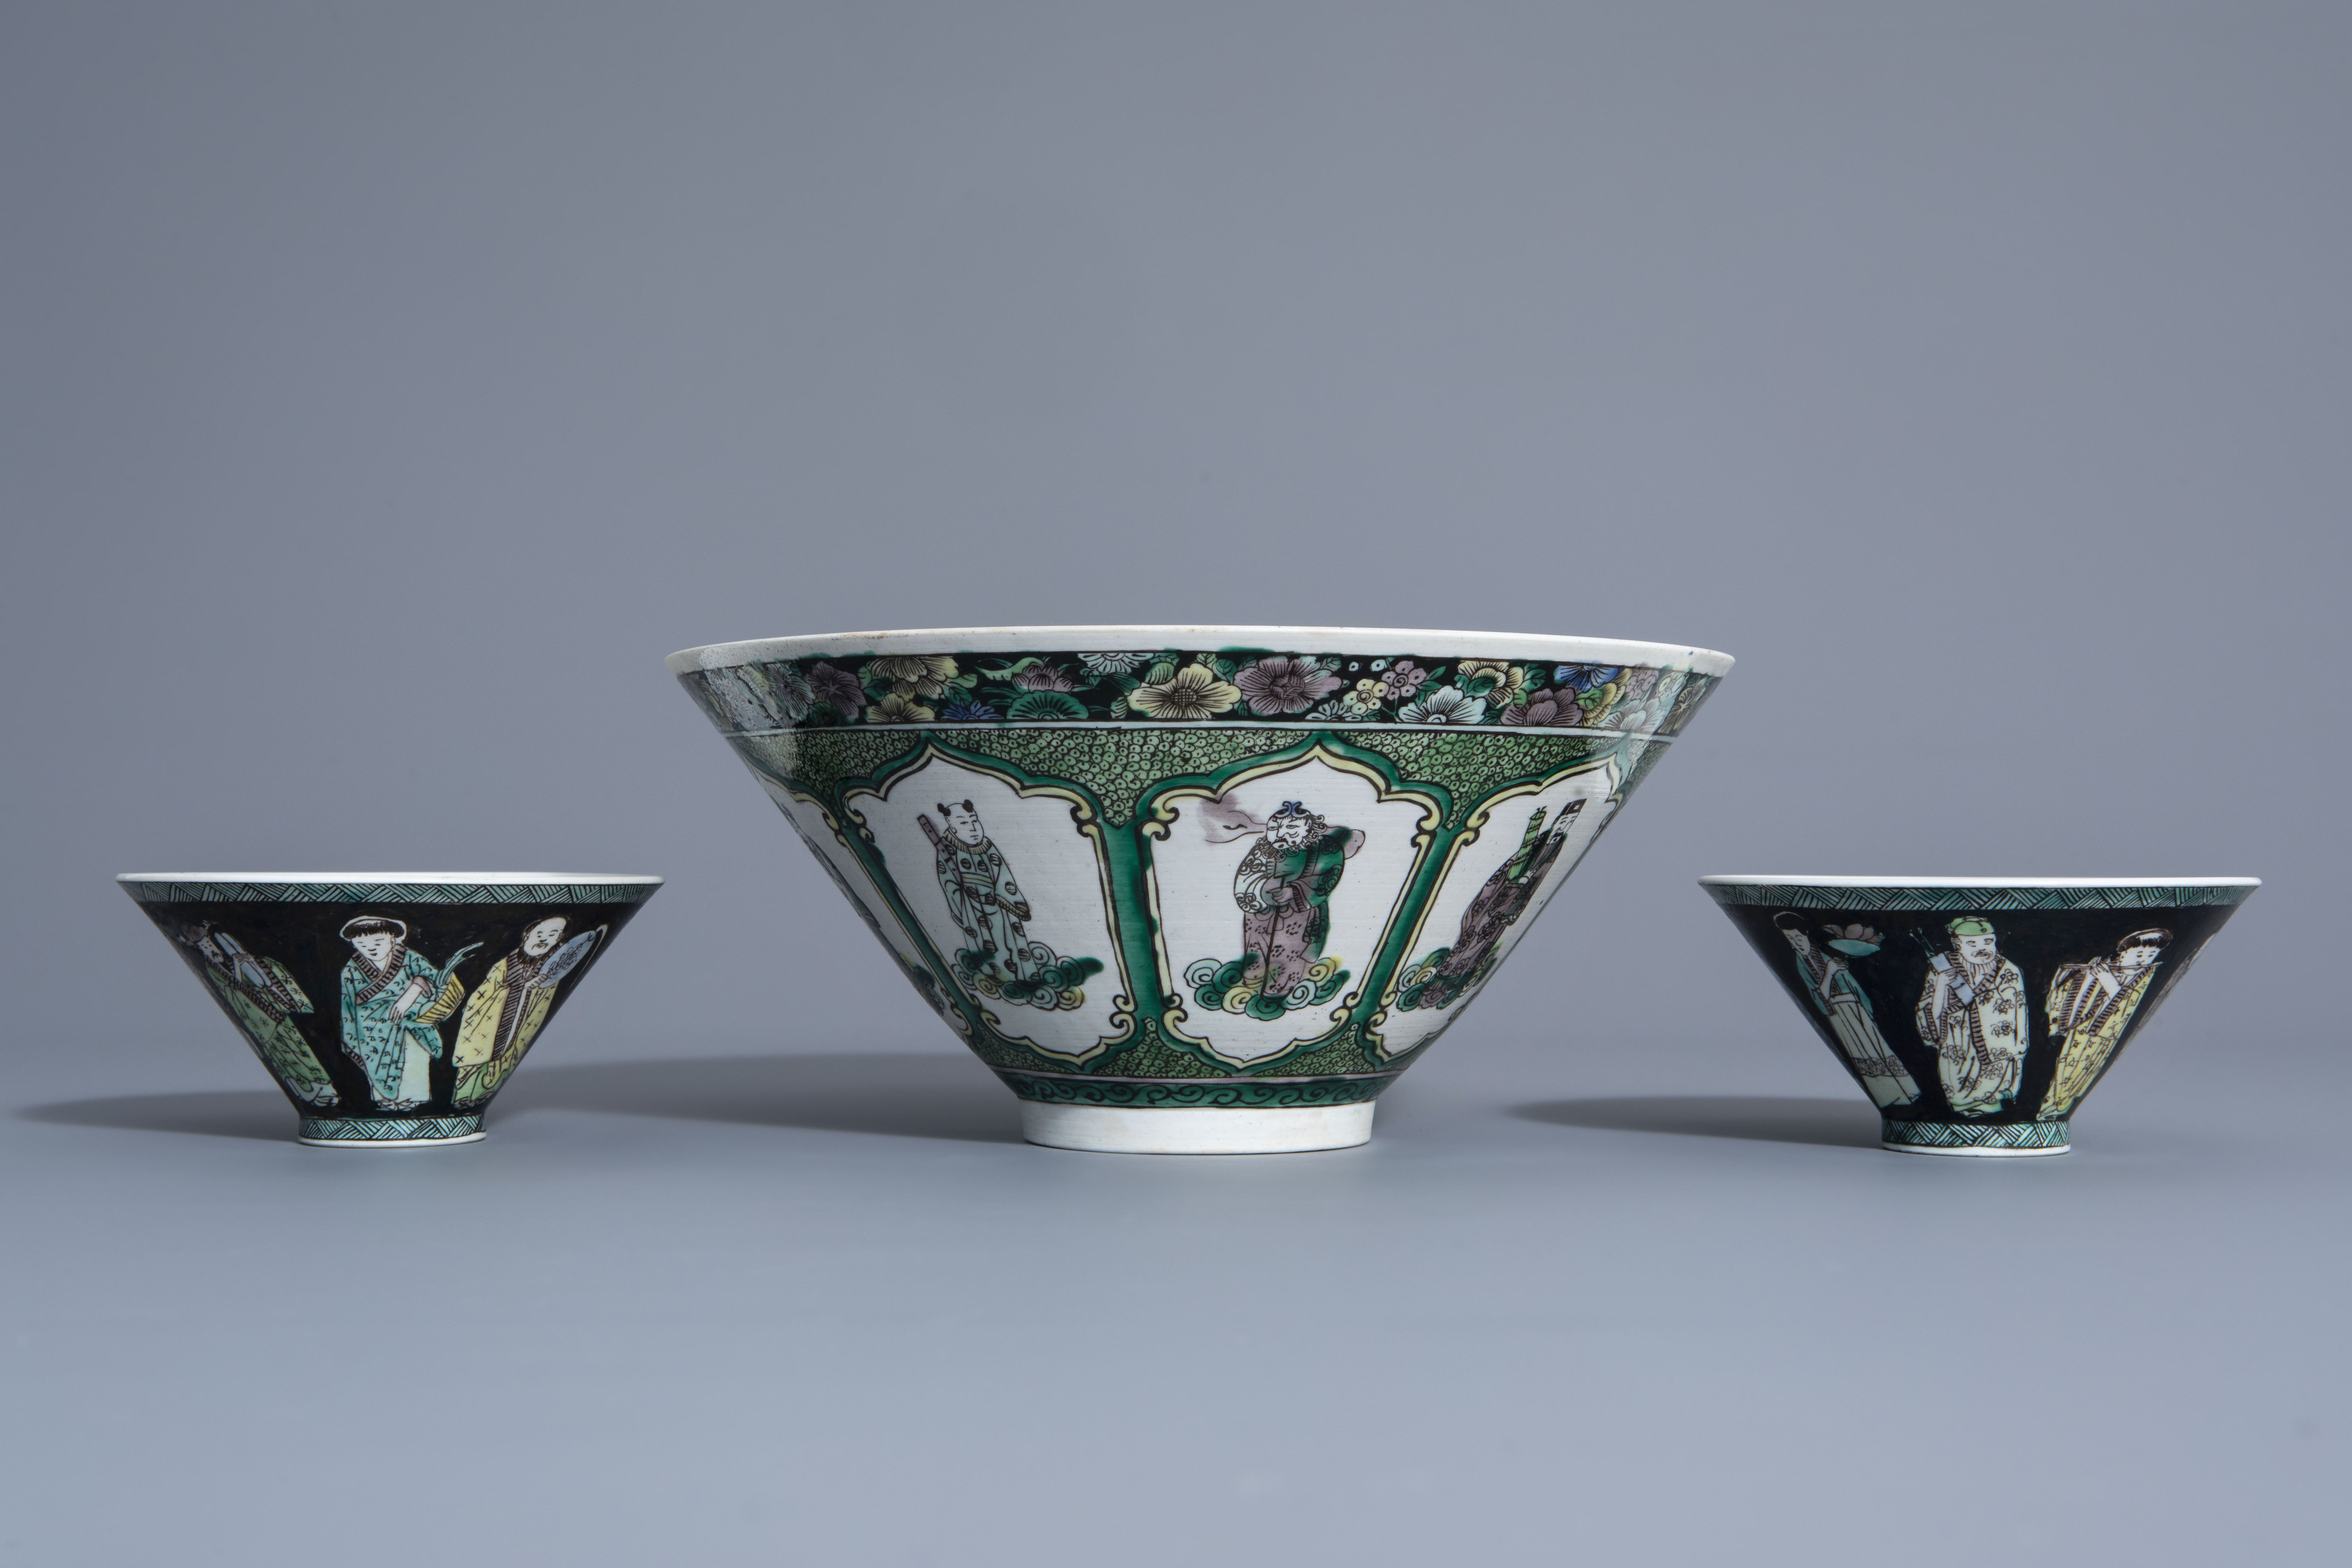 Three Chinese verte biscuit bowls with figurative design, Republic, 20th C. - Image 5 of 7